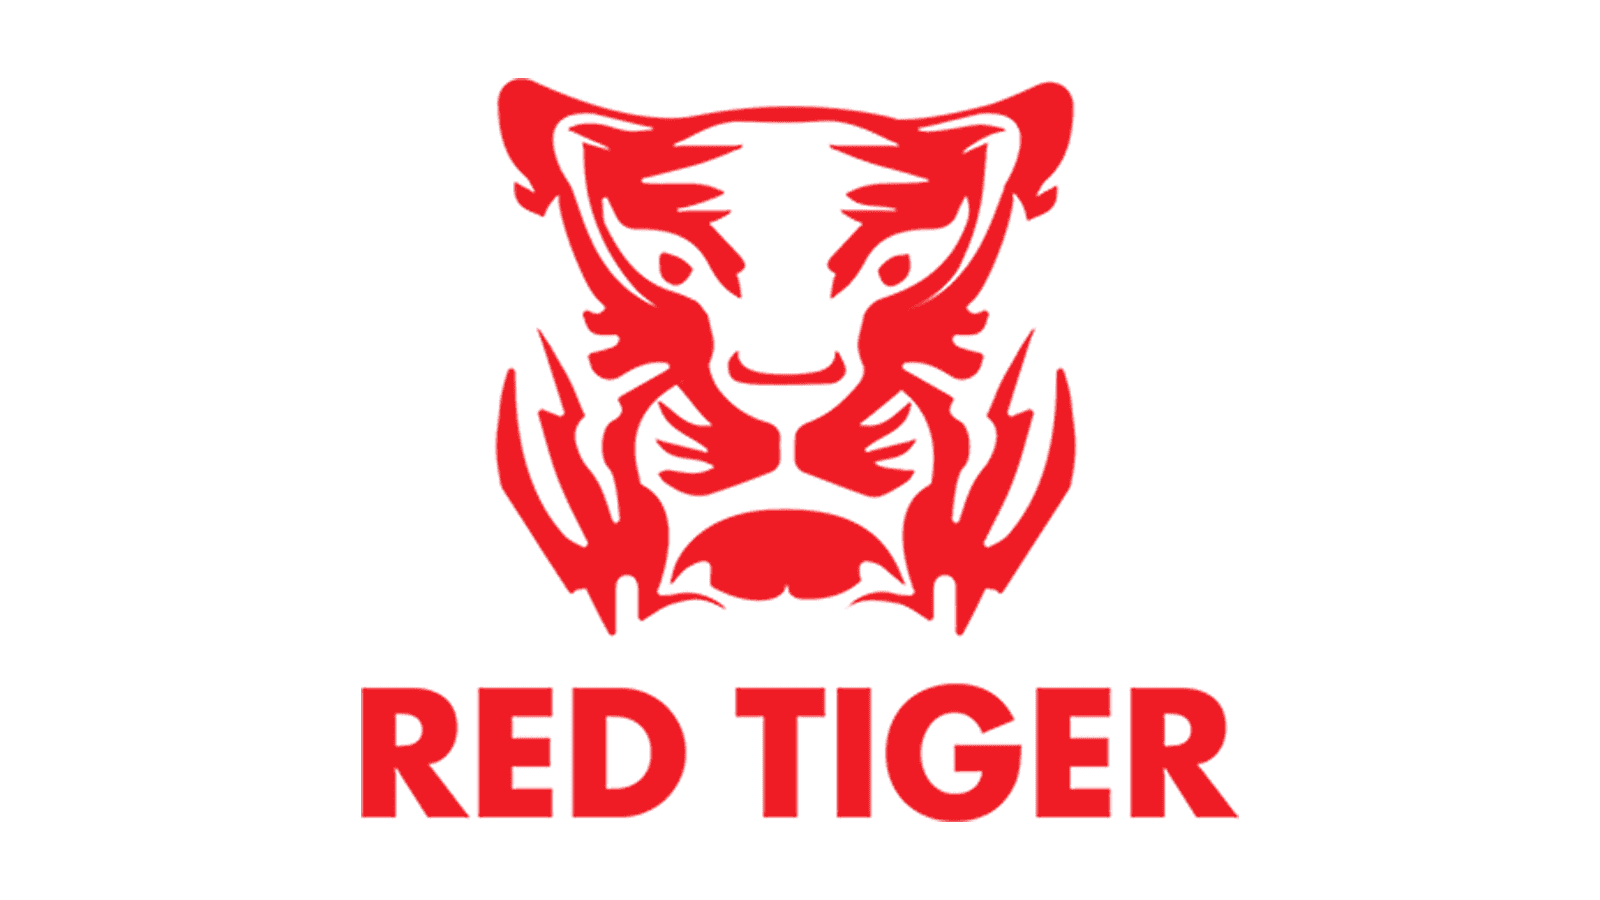 Received significado red tiger 401149